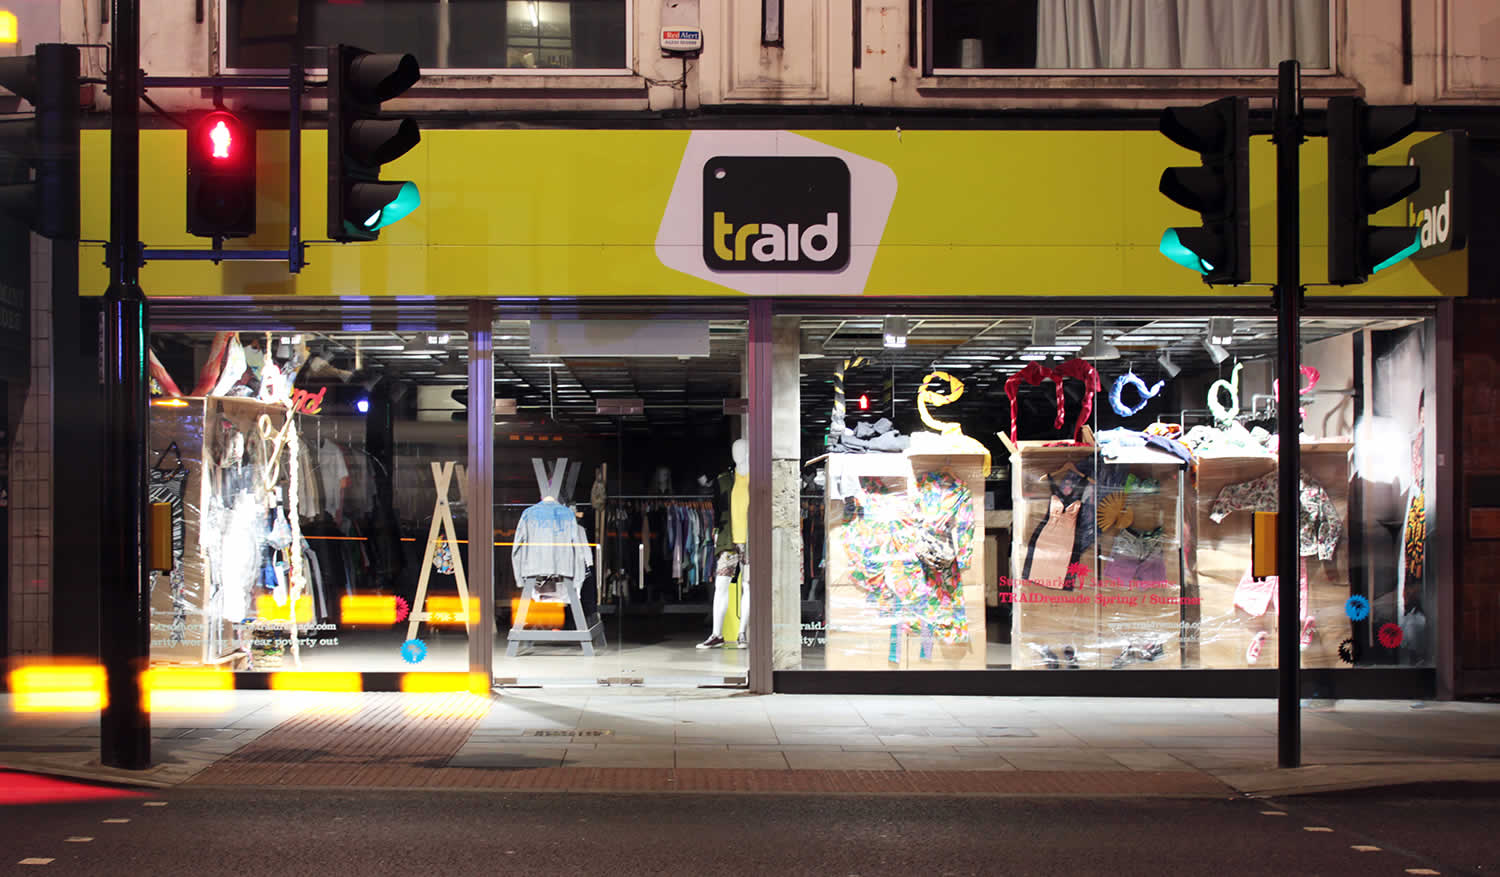 TRAID's bold high street identity helped the charity find its niche.